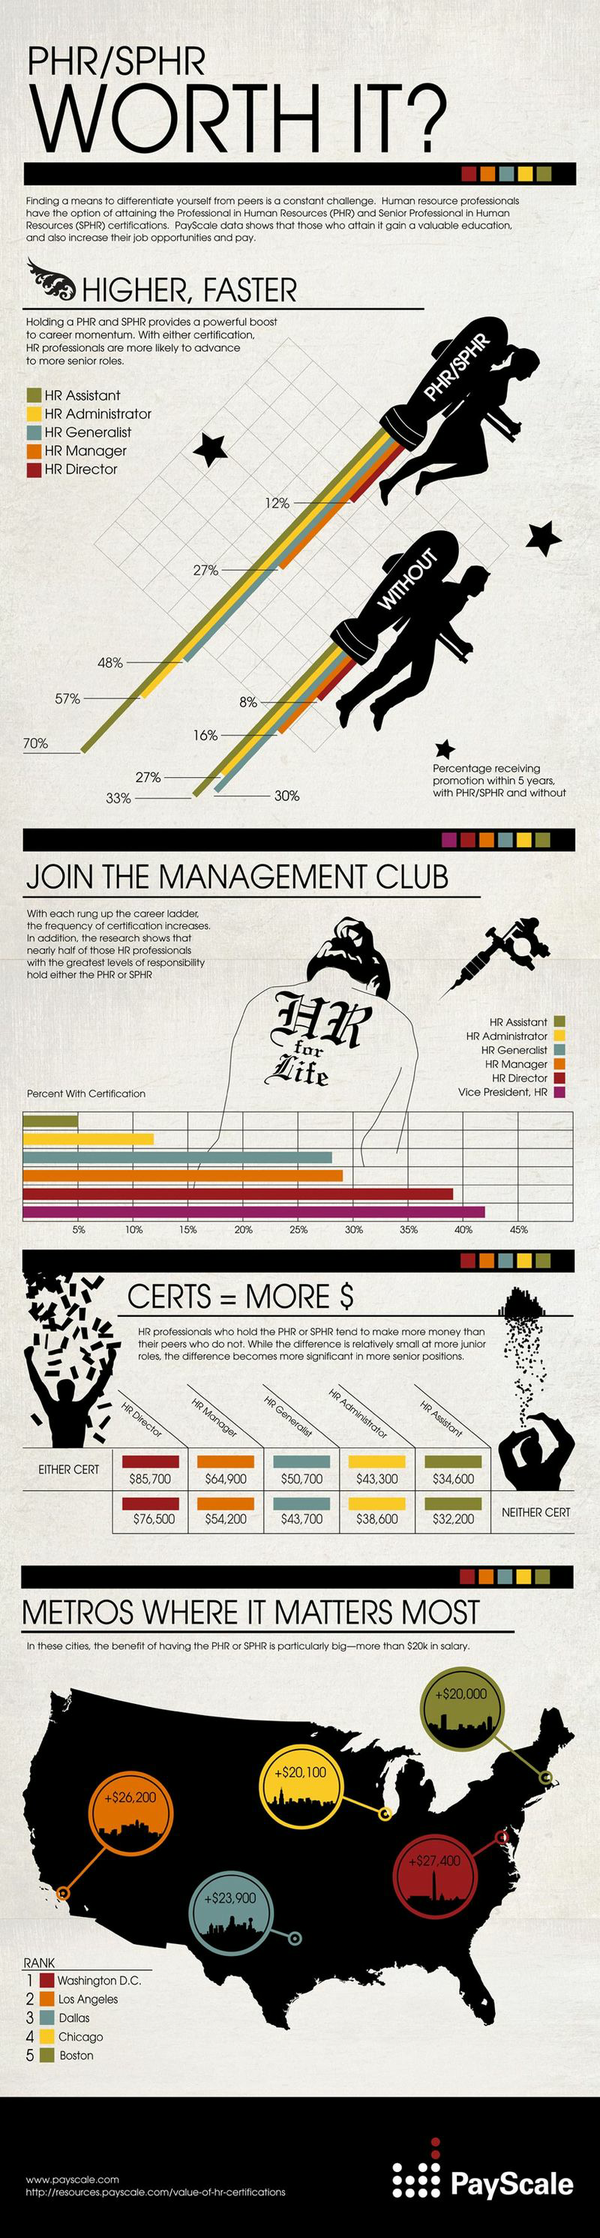 HR-Infographic-955